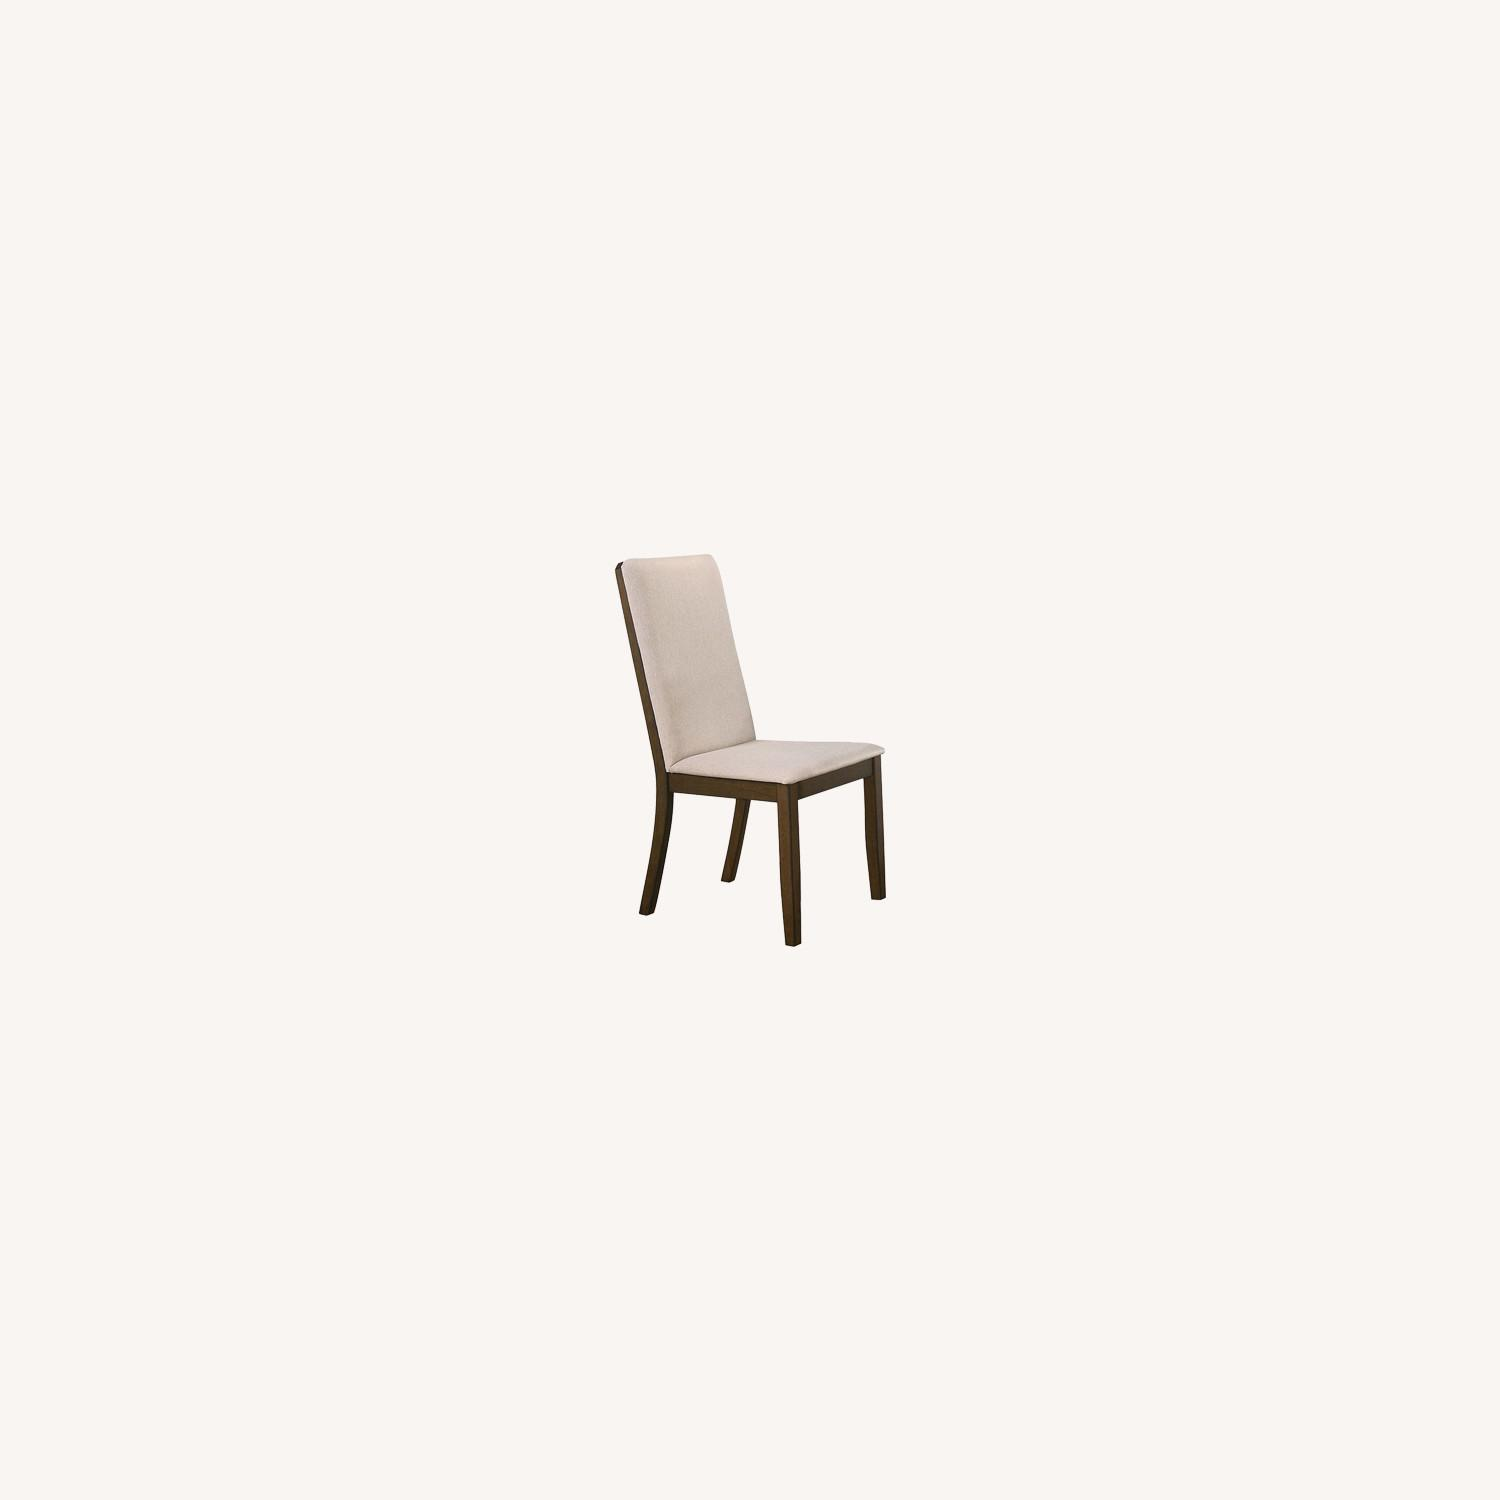 Transitional Side Chair In Latte Fabric - image-3